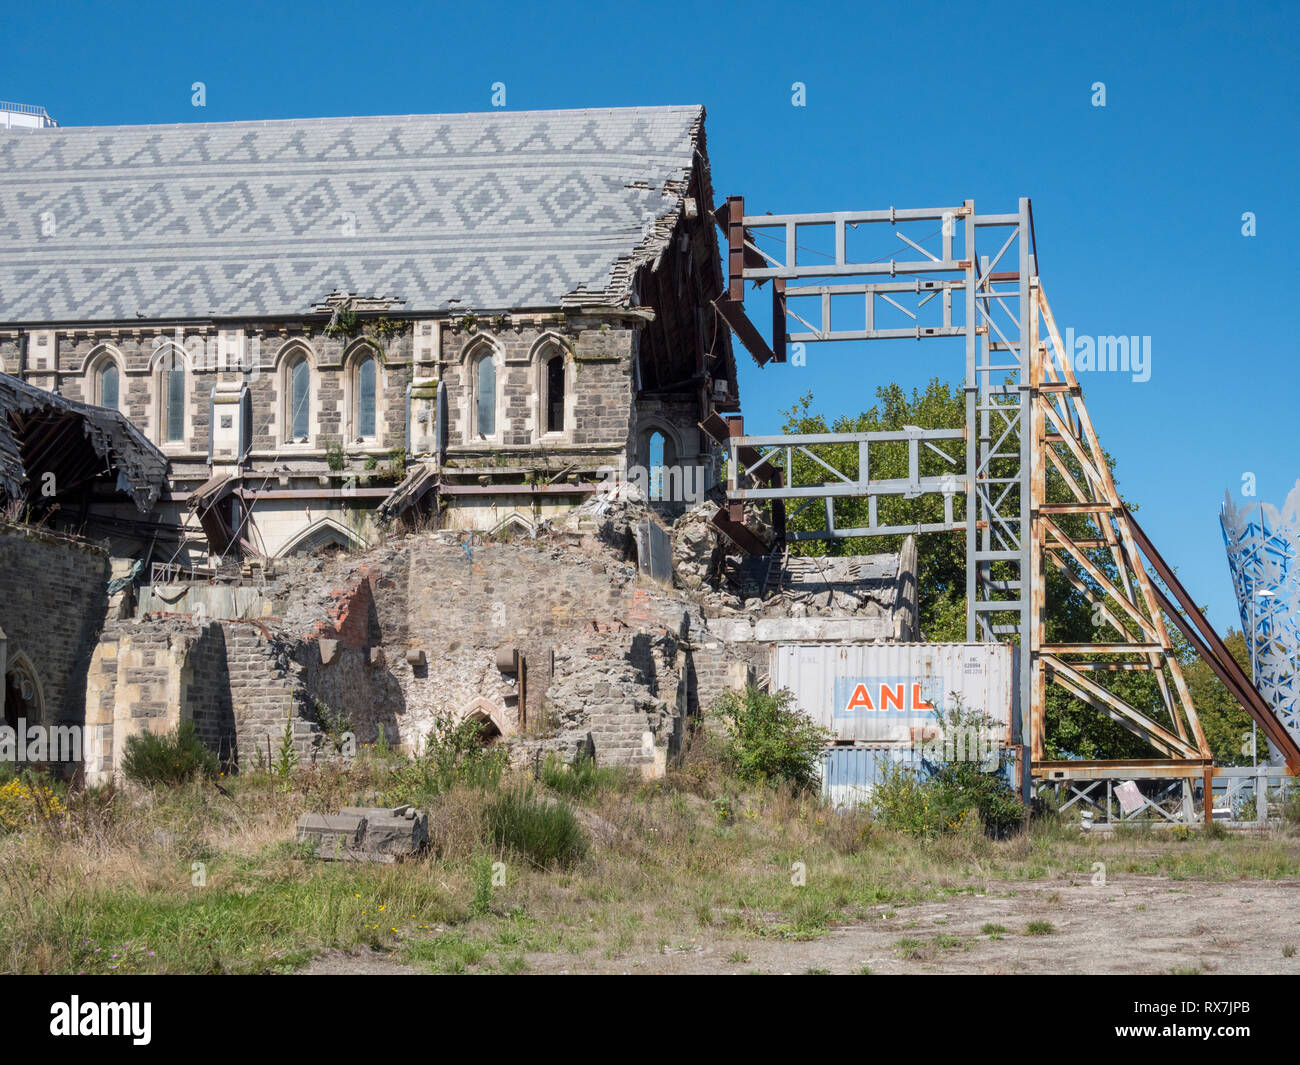 The earhquake damaged old Christchurch Cathedral New Zealand showing the metal protective scaffolding keeping it safe from further damage - Stock Image